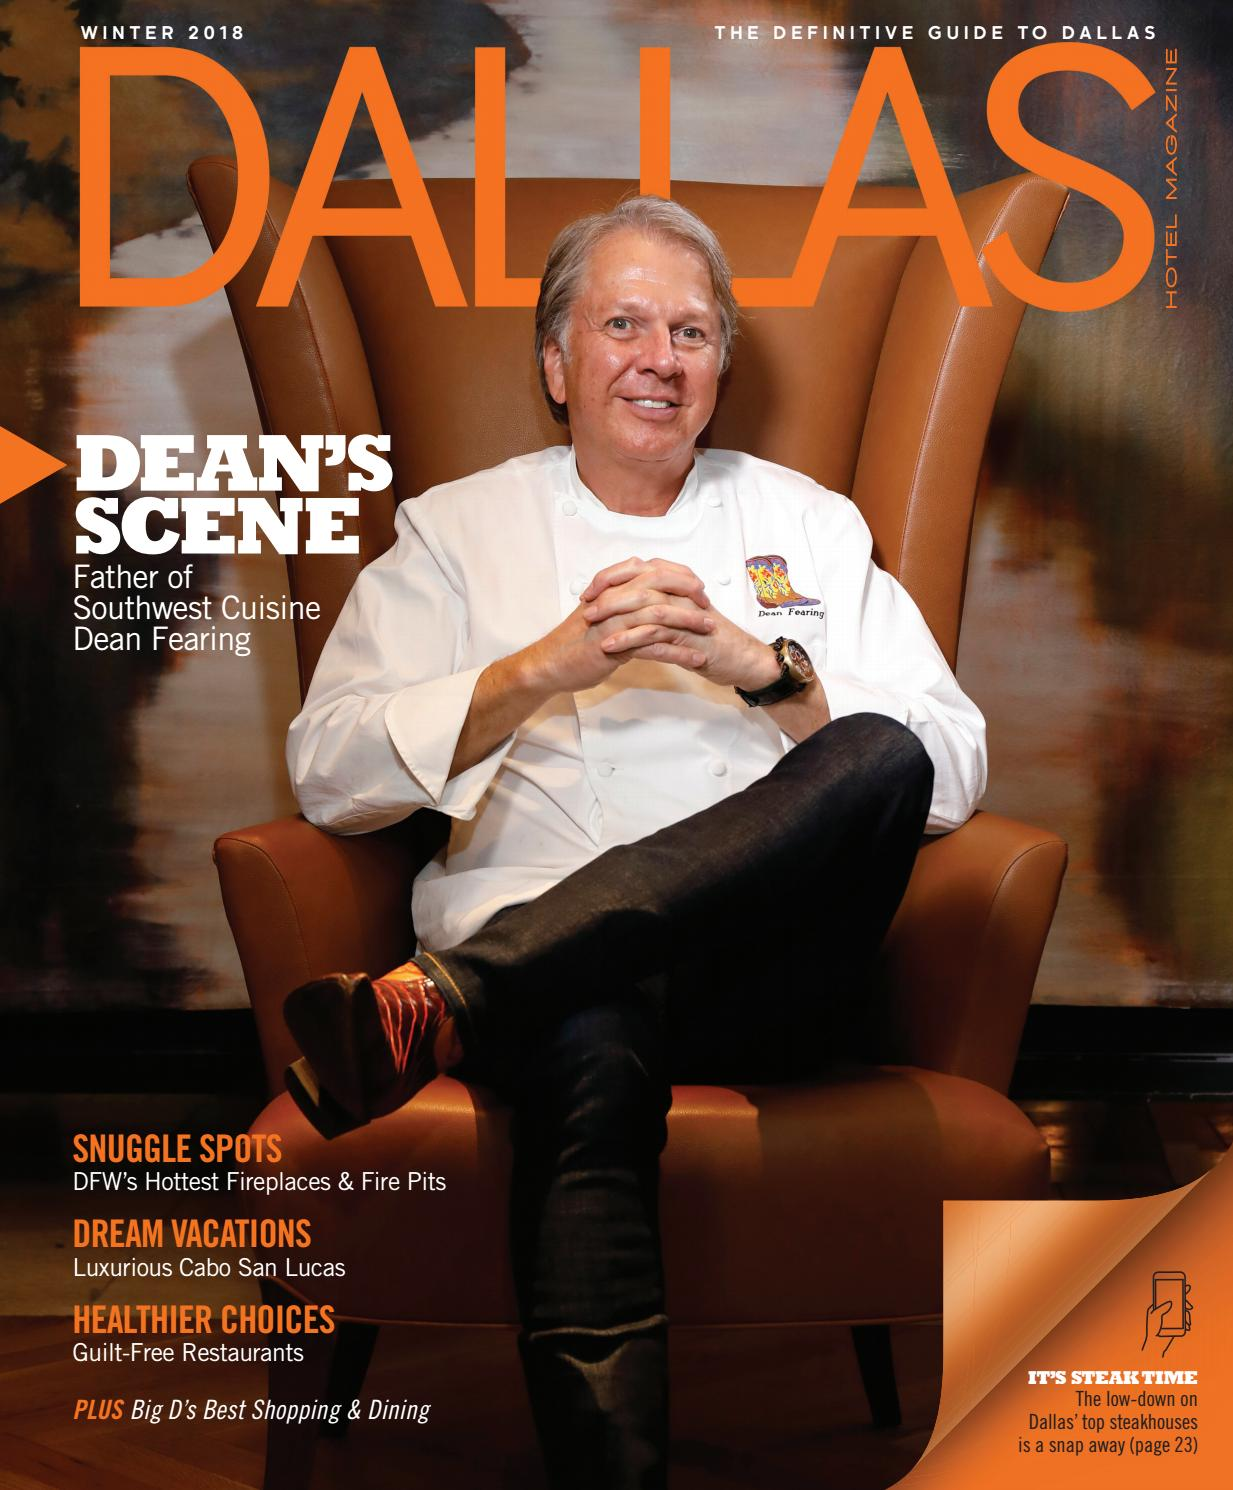 bb31952cc86 Dallas Hotel Magazine Winter 2018 by Dallas Hotel Magazine - issuu